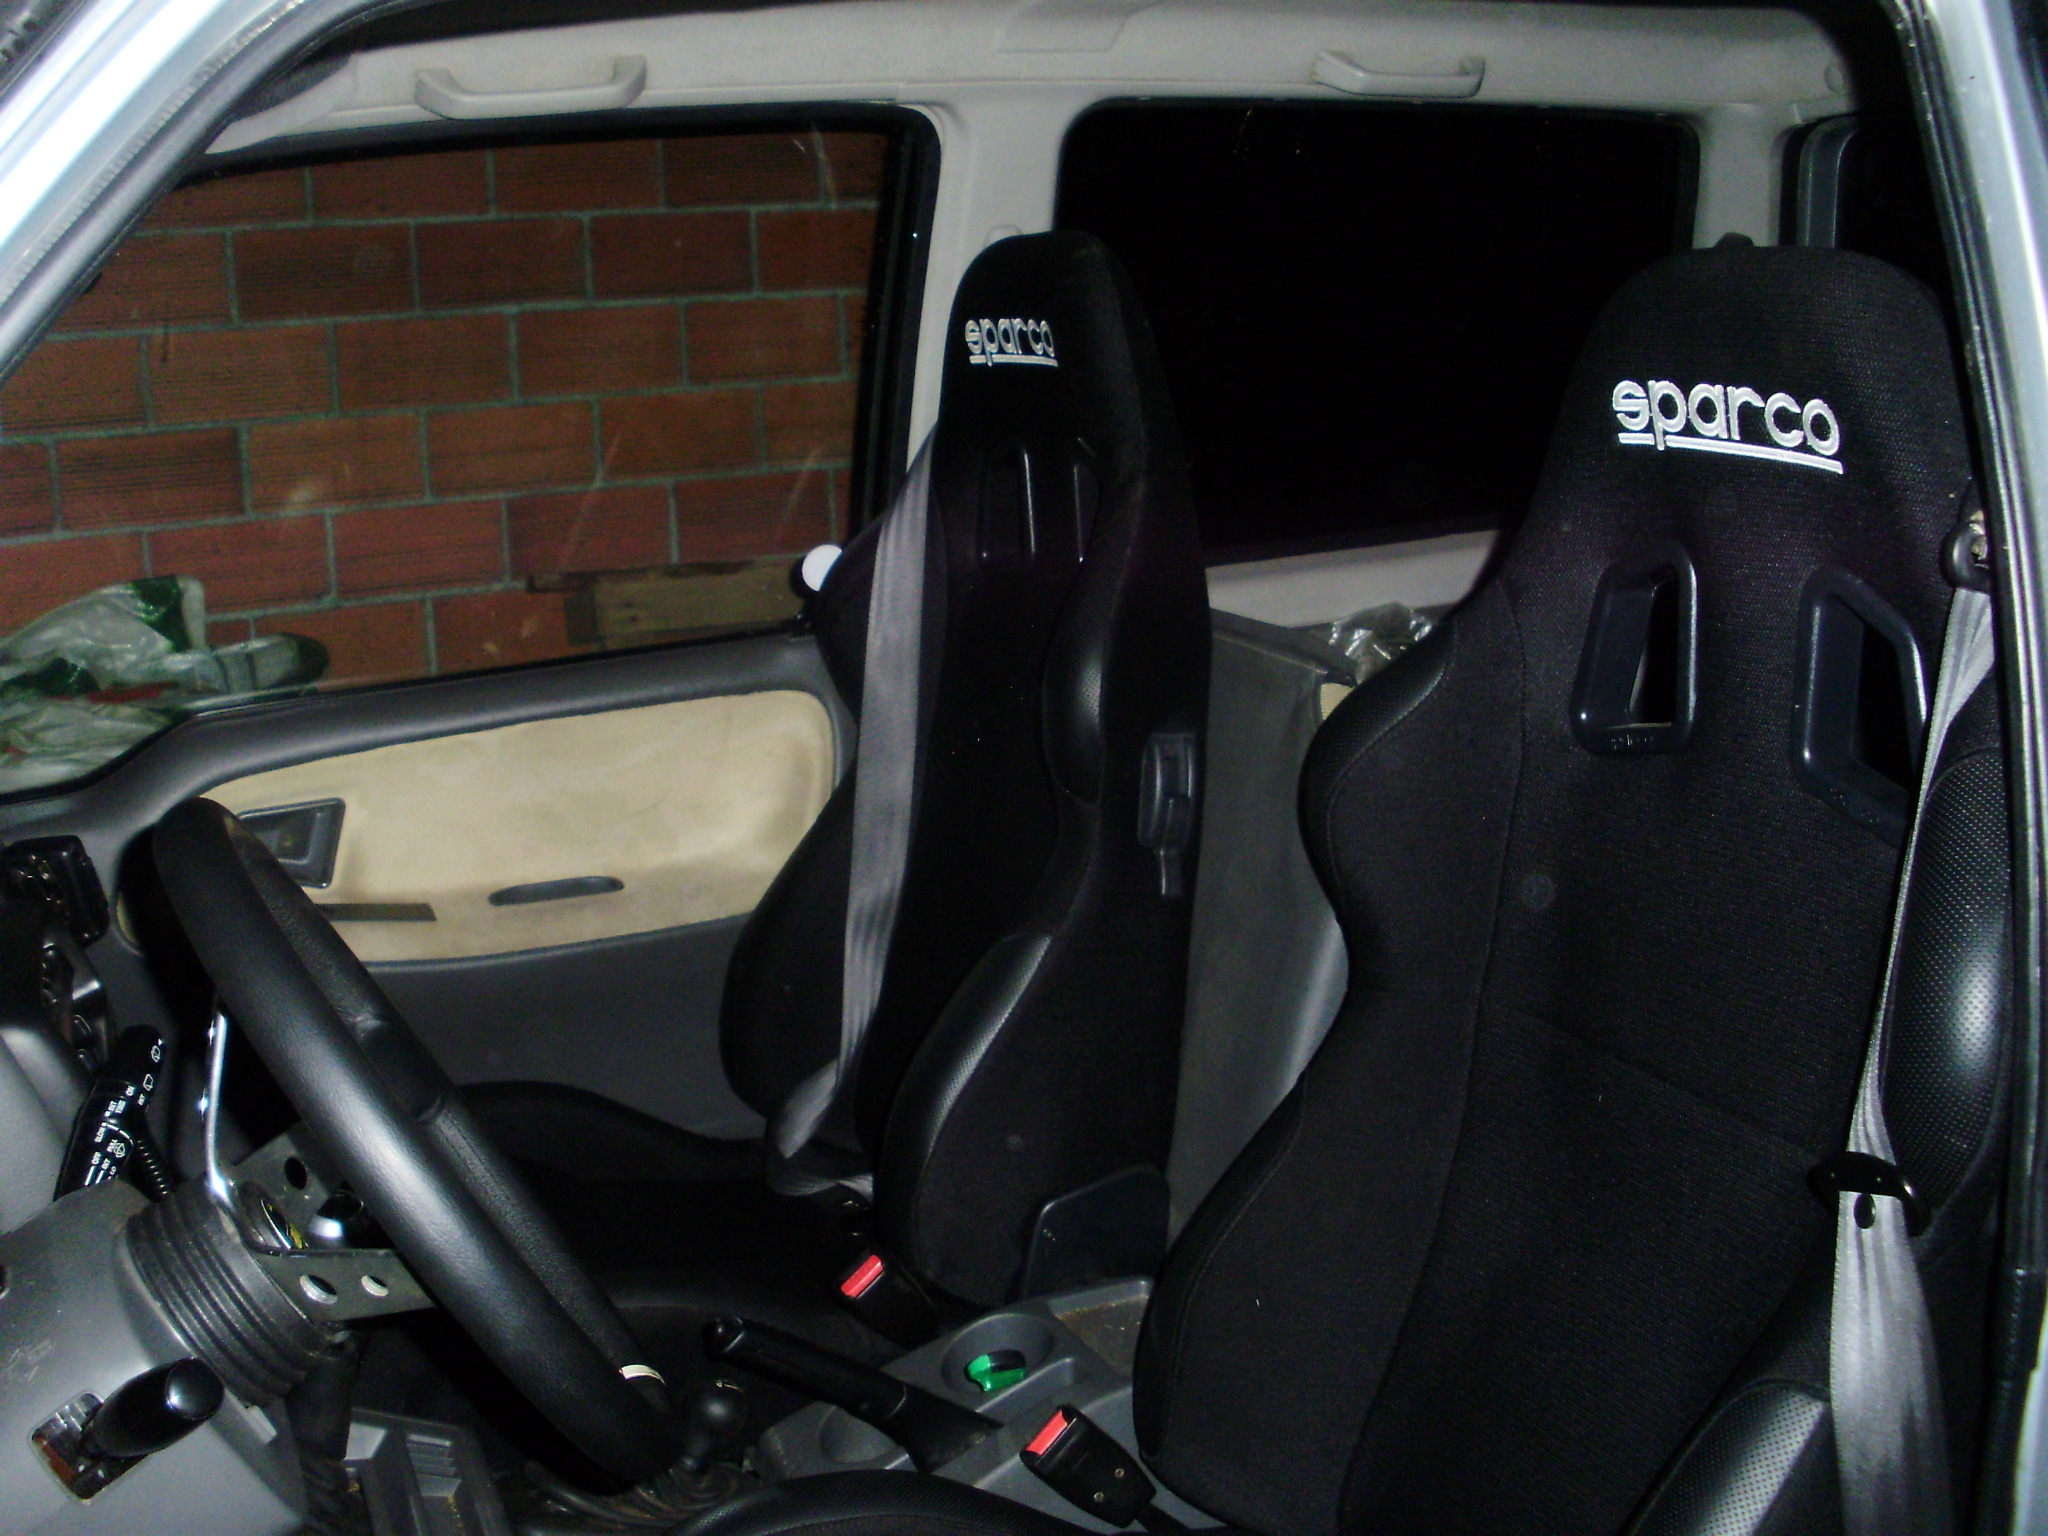 Sparco Torino Replacement Seat Covers Velcromag